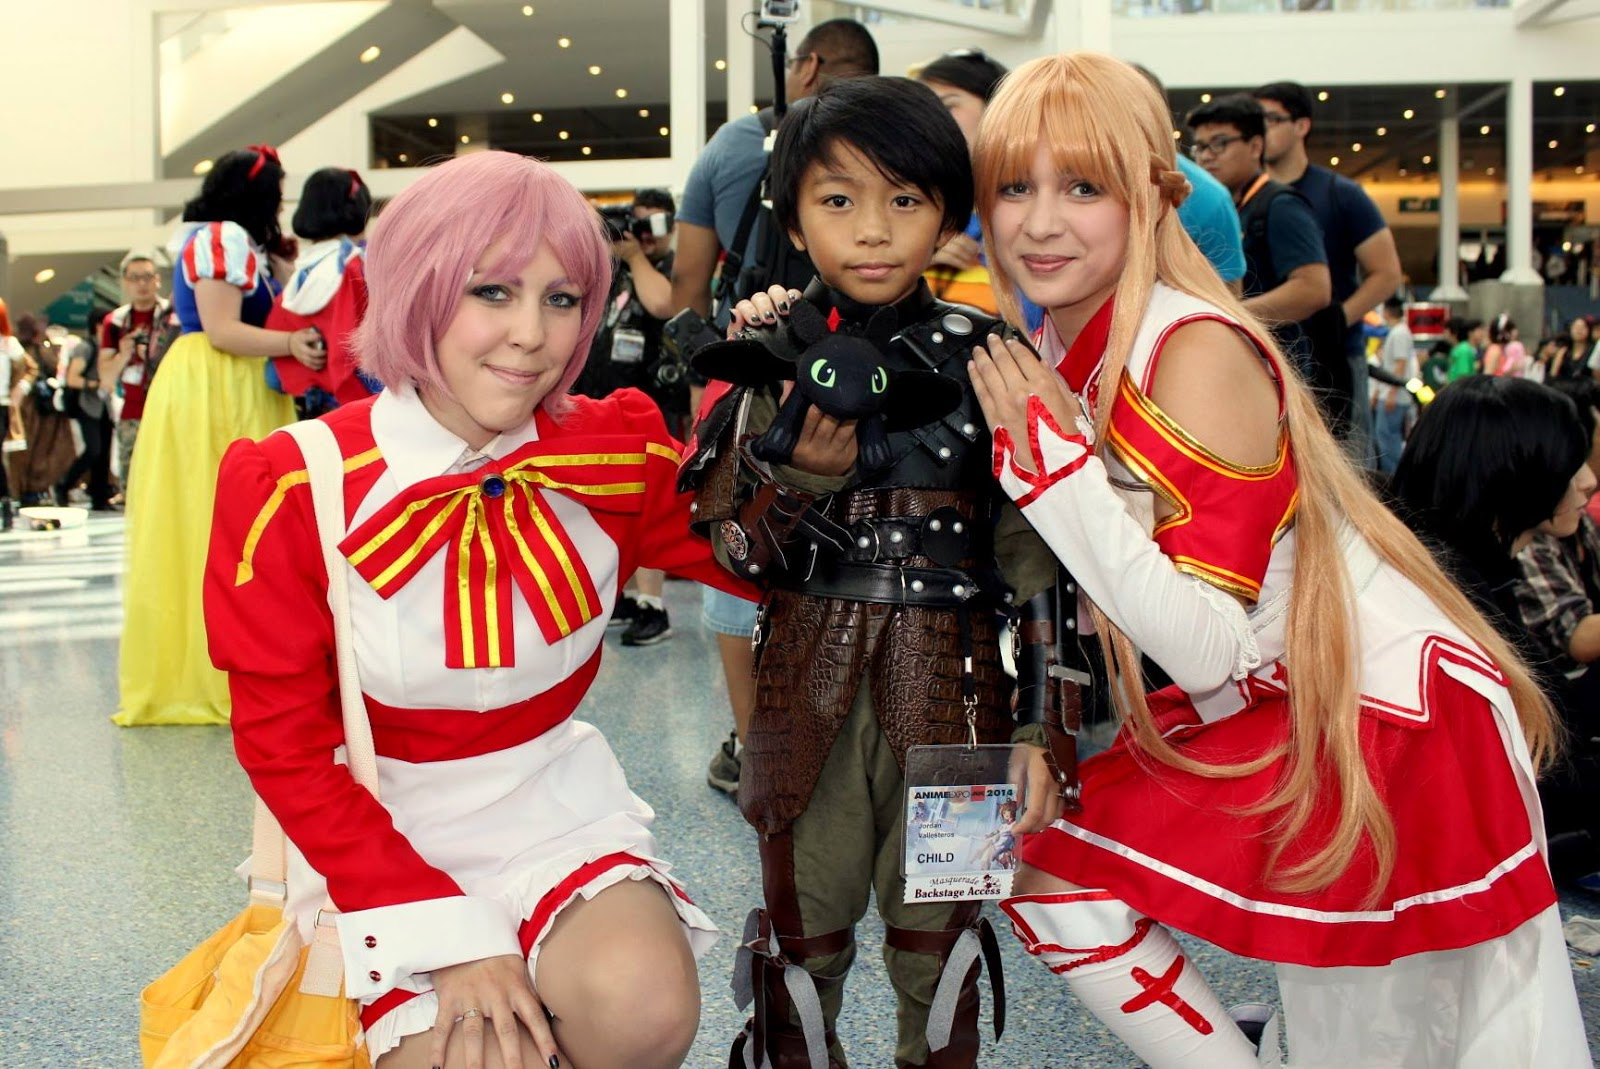 See More Pictures From The Event MiniBobaFetts Facebook Fan Page CLICK HERE